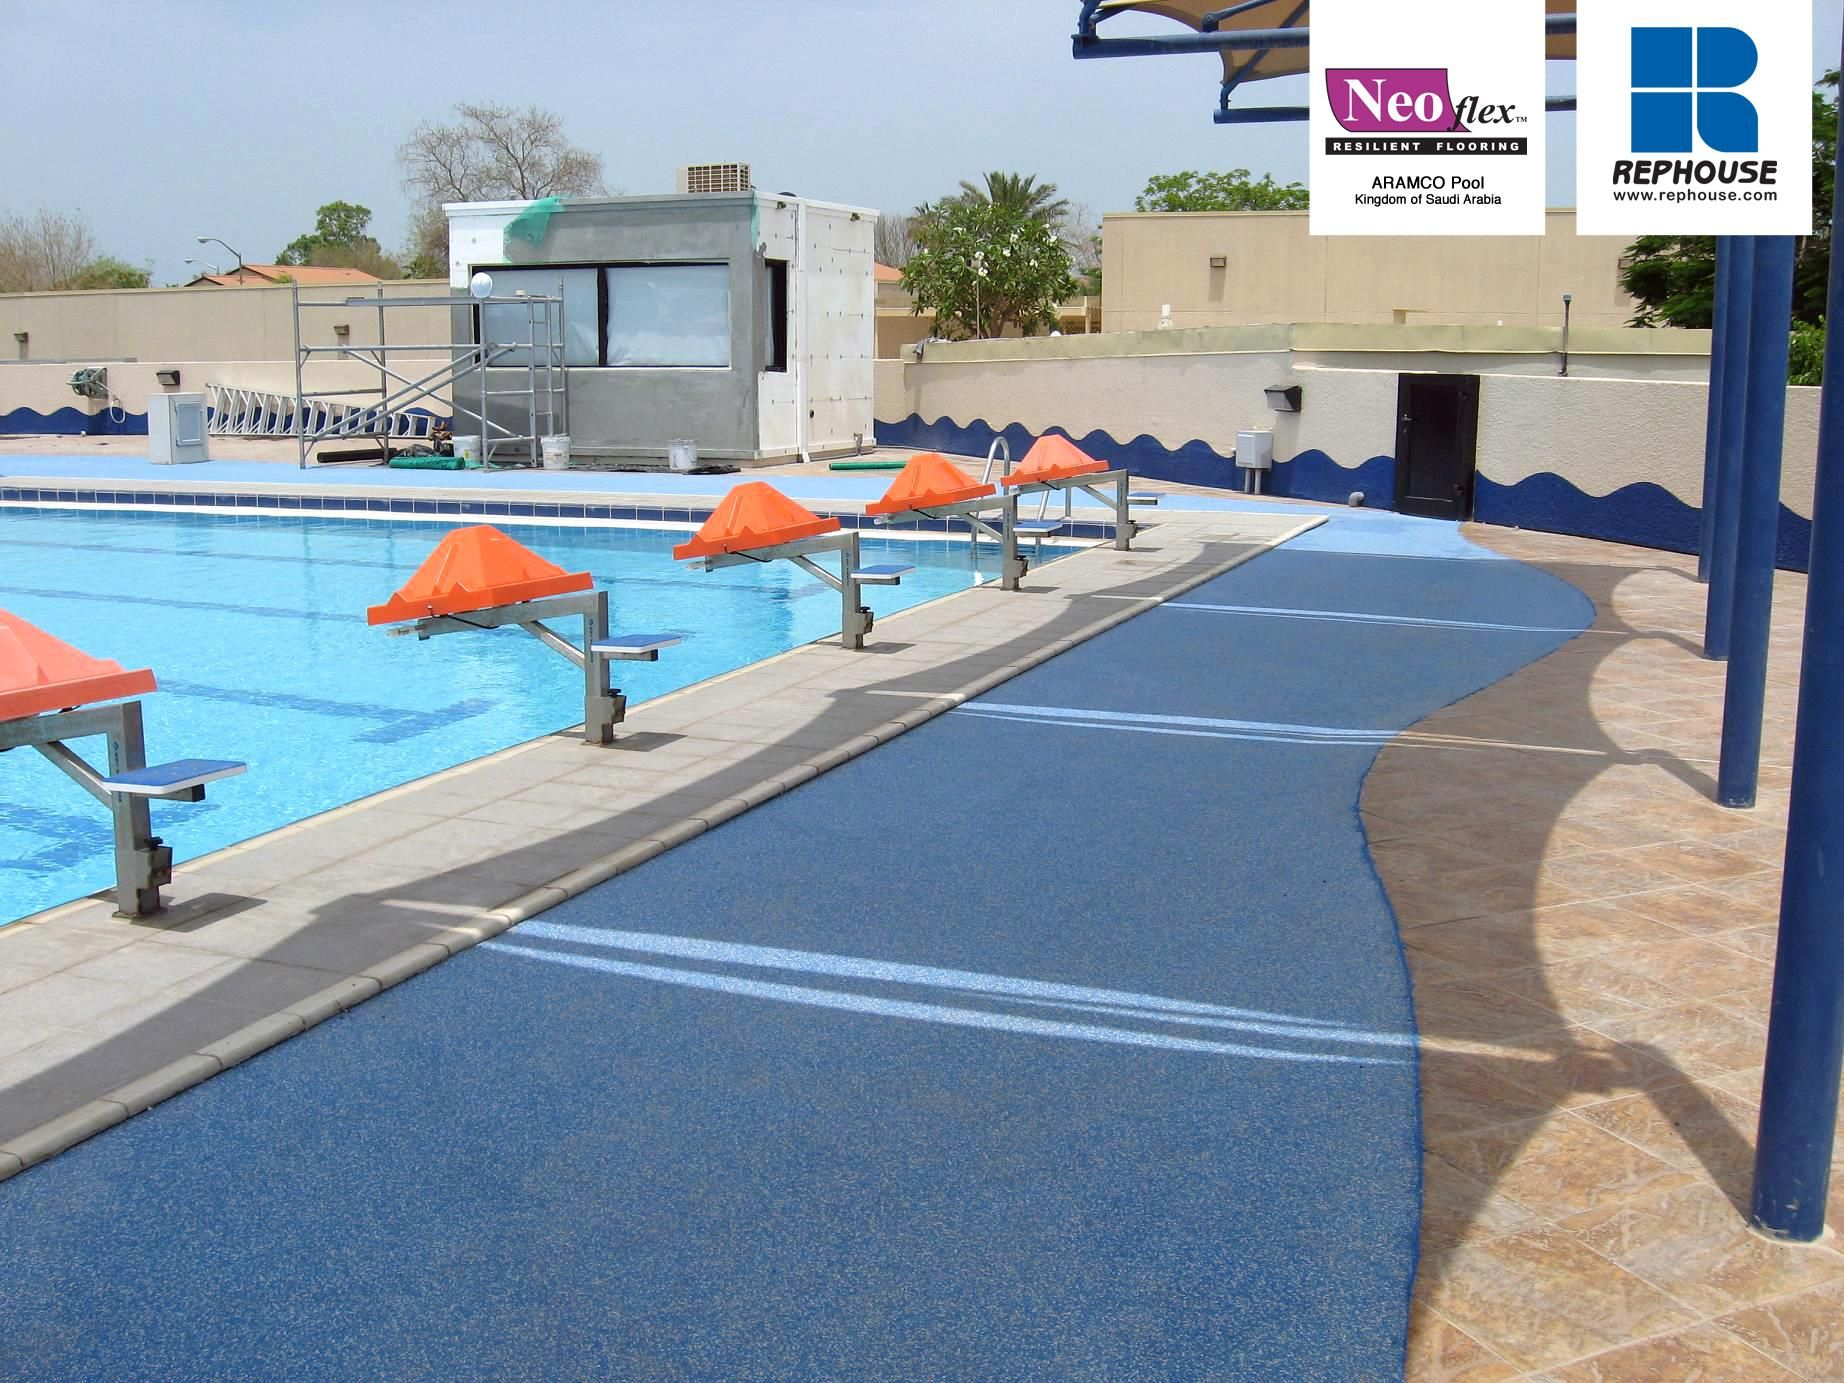 Neoflex 600 Series Rubber Pool Surround Flooring ARAMCO